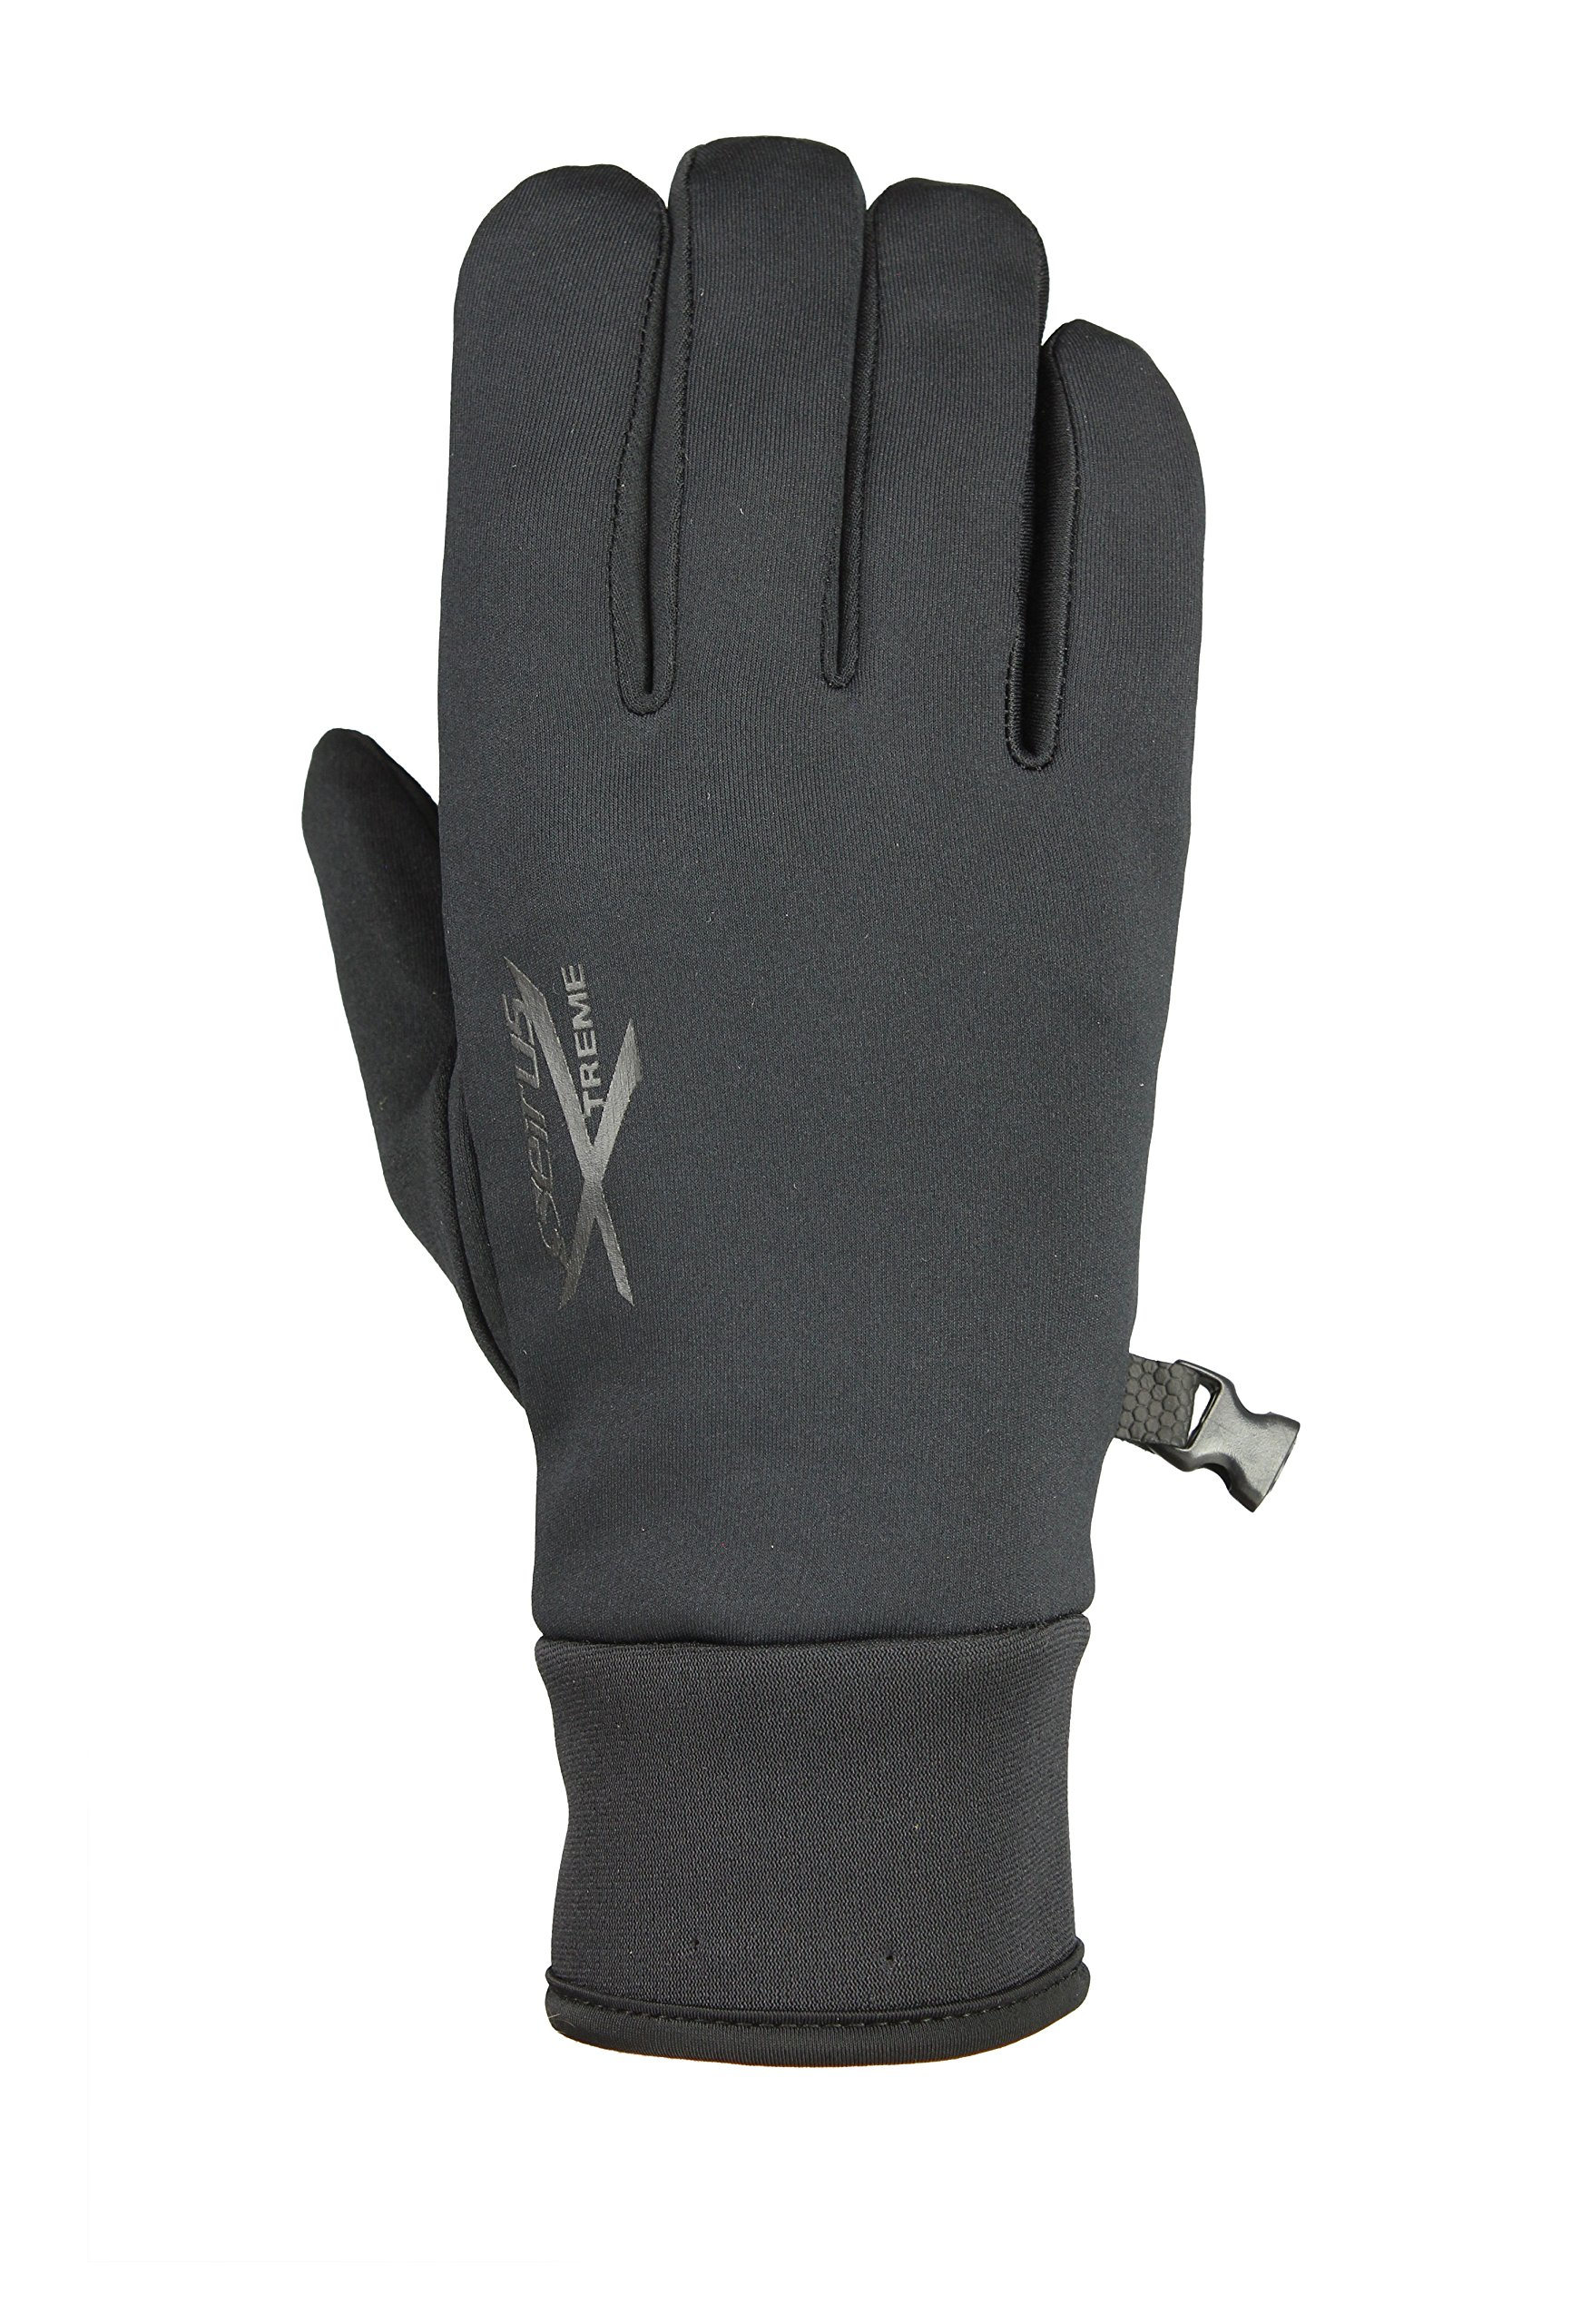 Seirus Innovation 1426 Xtreme All Weather Waterproof and Breathable Winter Cold Weather Glove